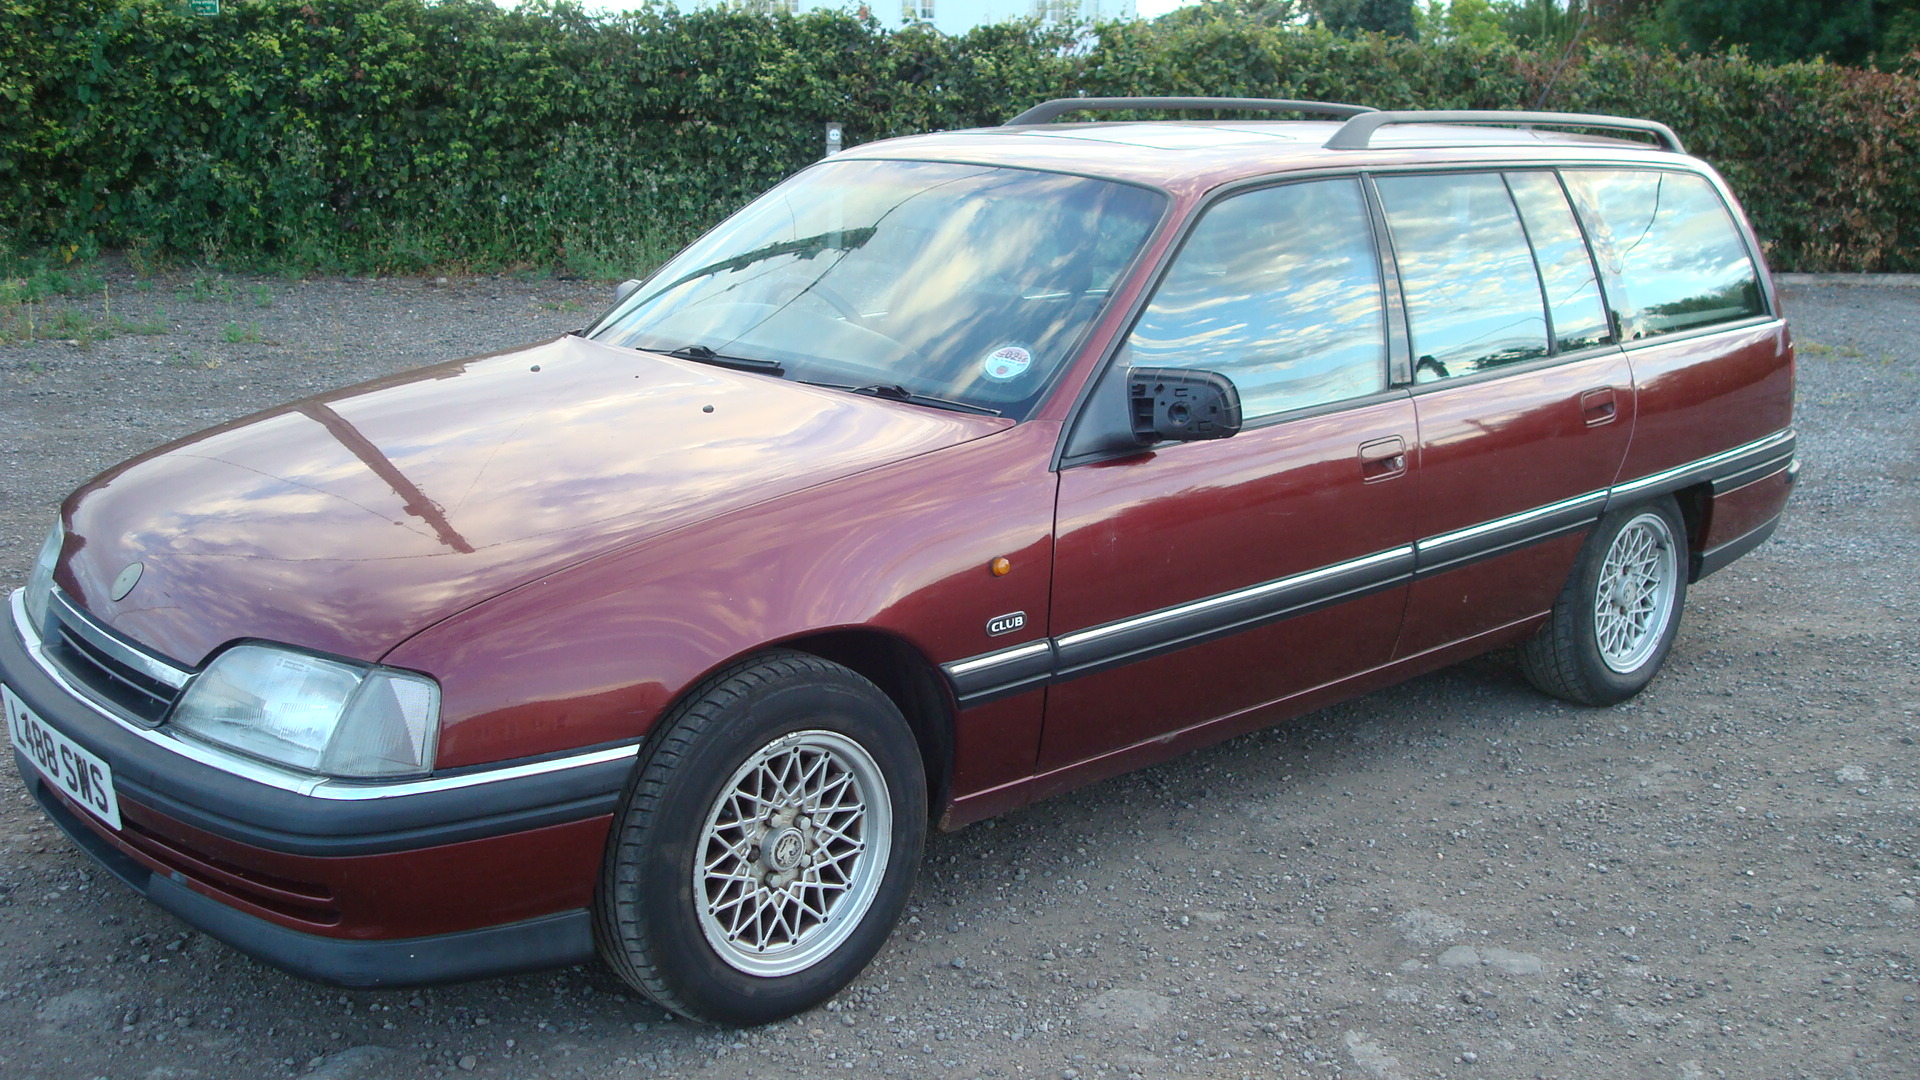 vauxhall-carlton-mk-iii-estate-[16057] Surprising Lotus Carlton Engine for Sale Cars Trend